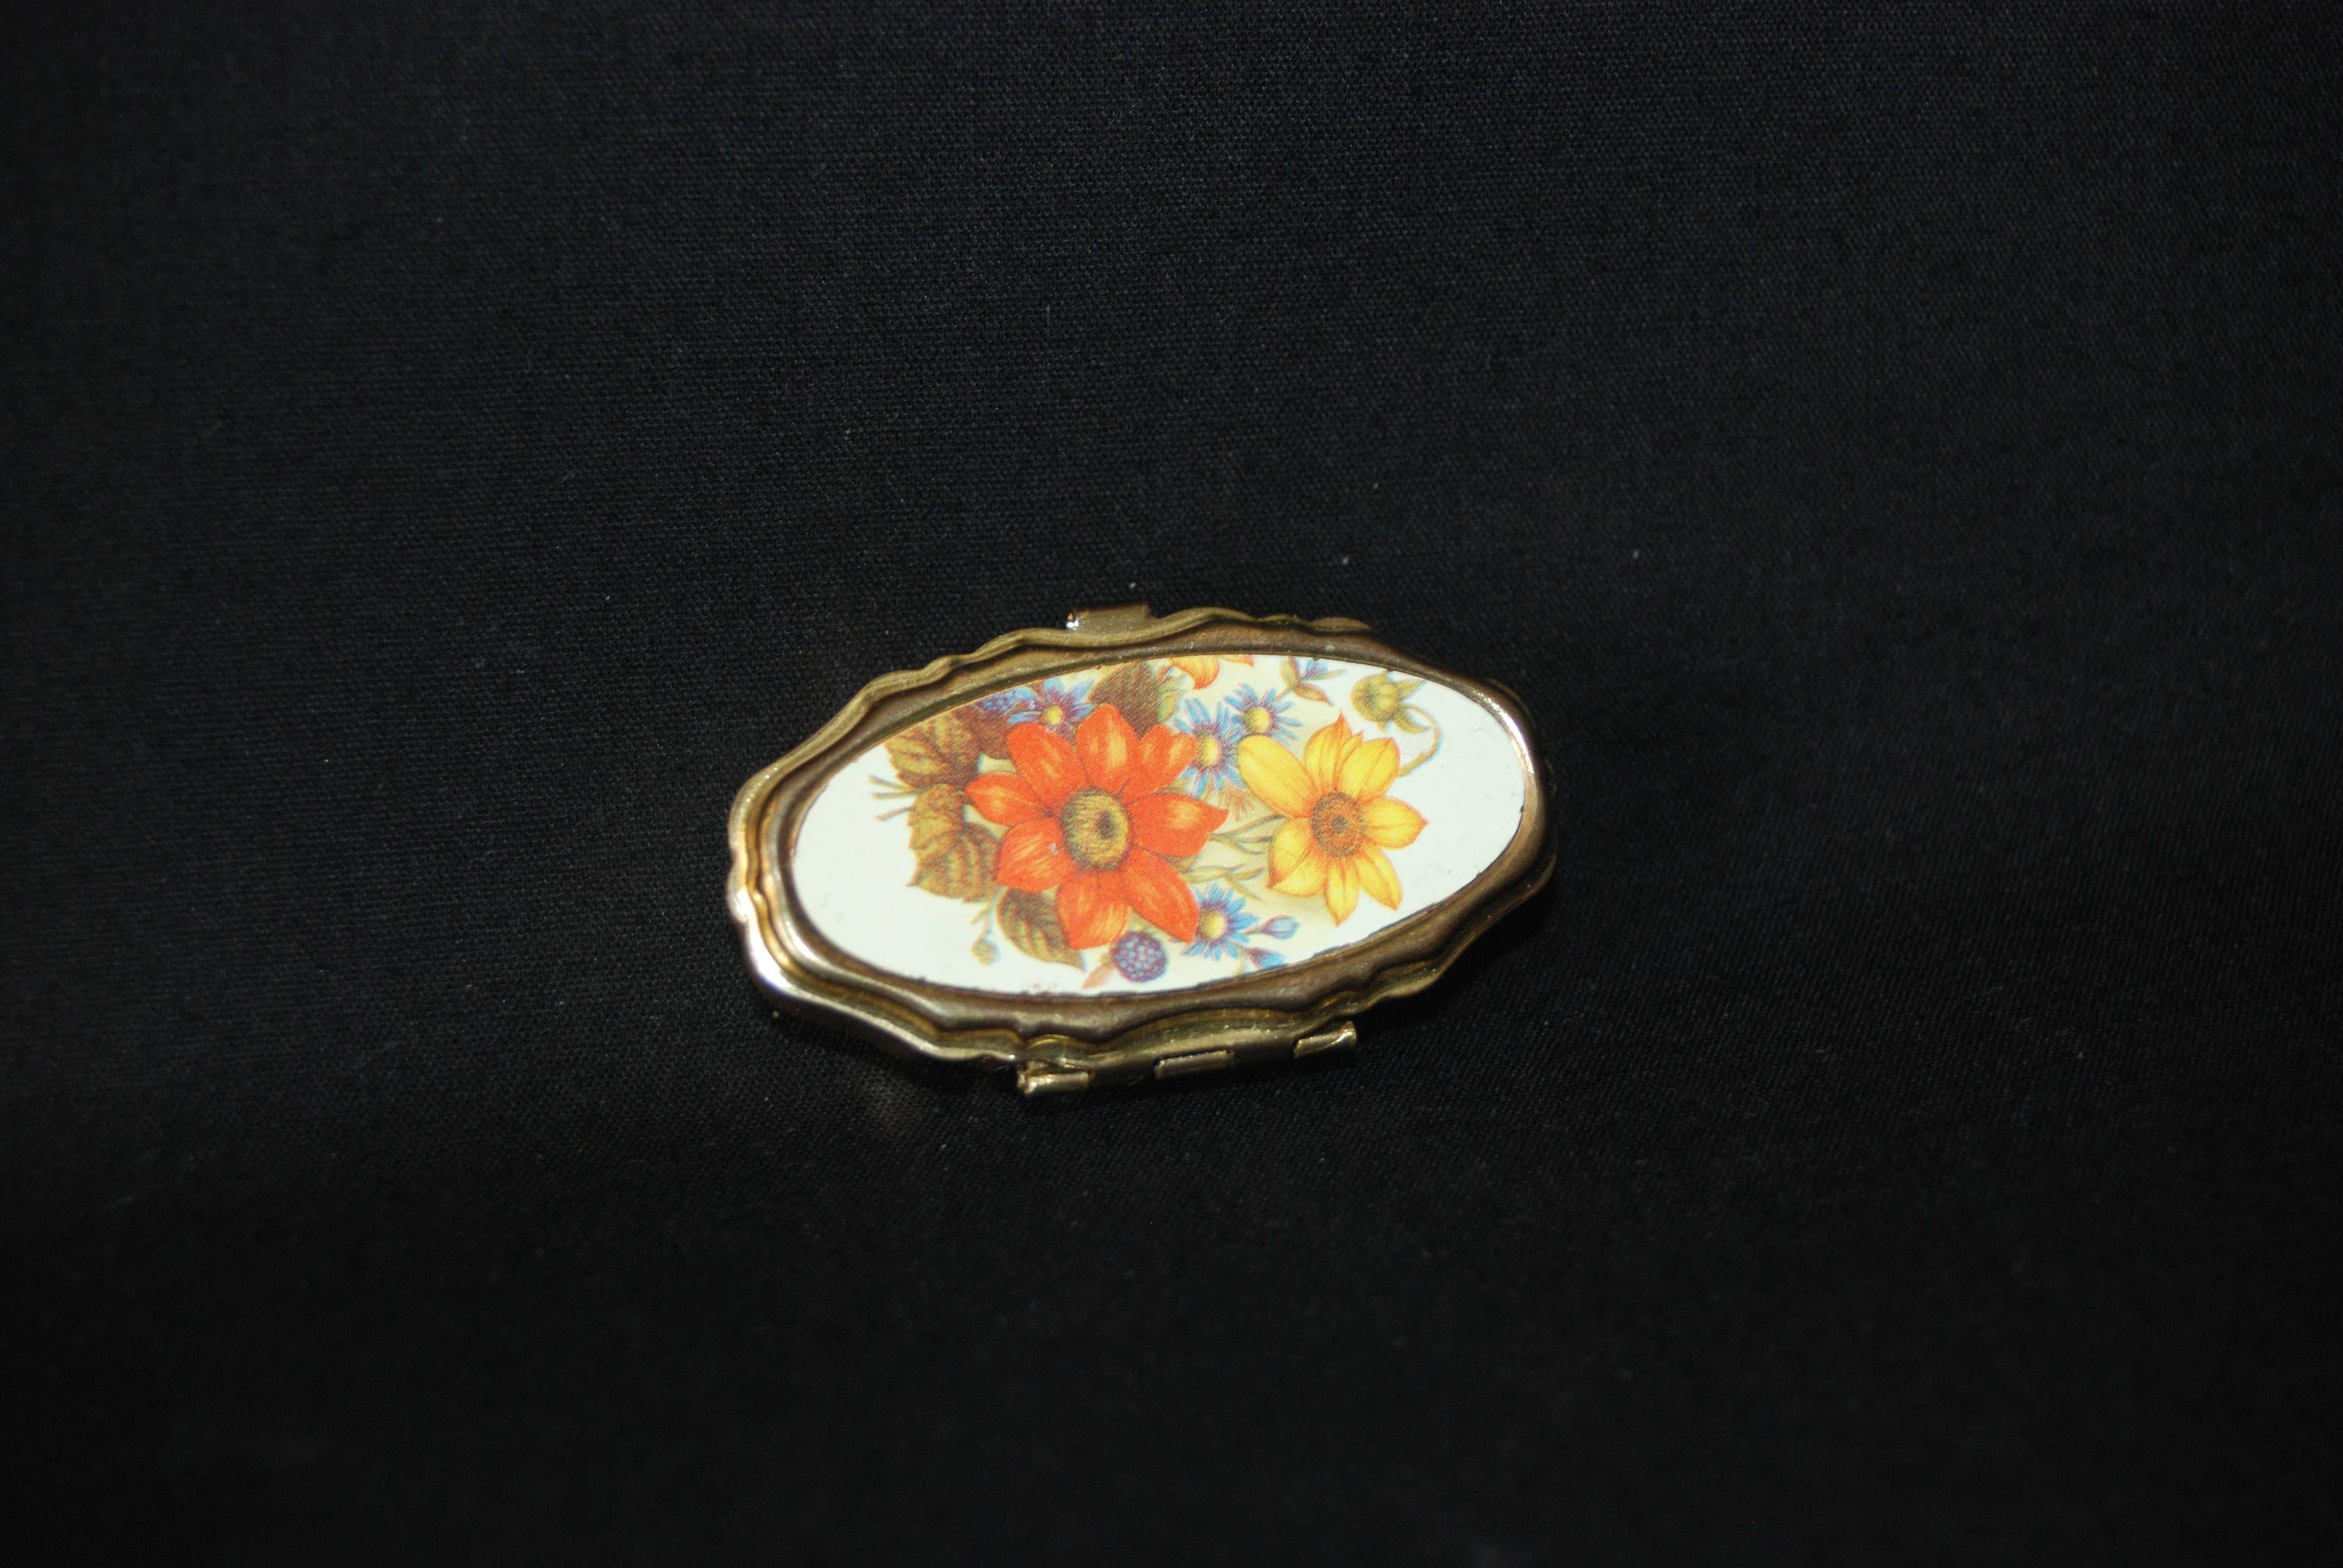 Flowers pill box vintage collectible floral gold colored metal